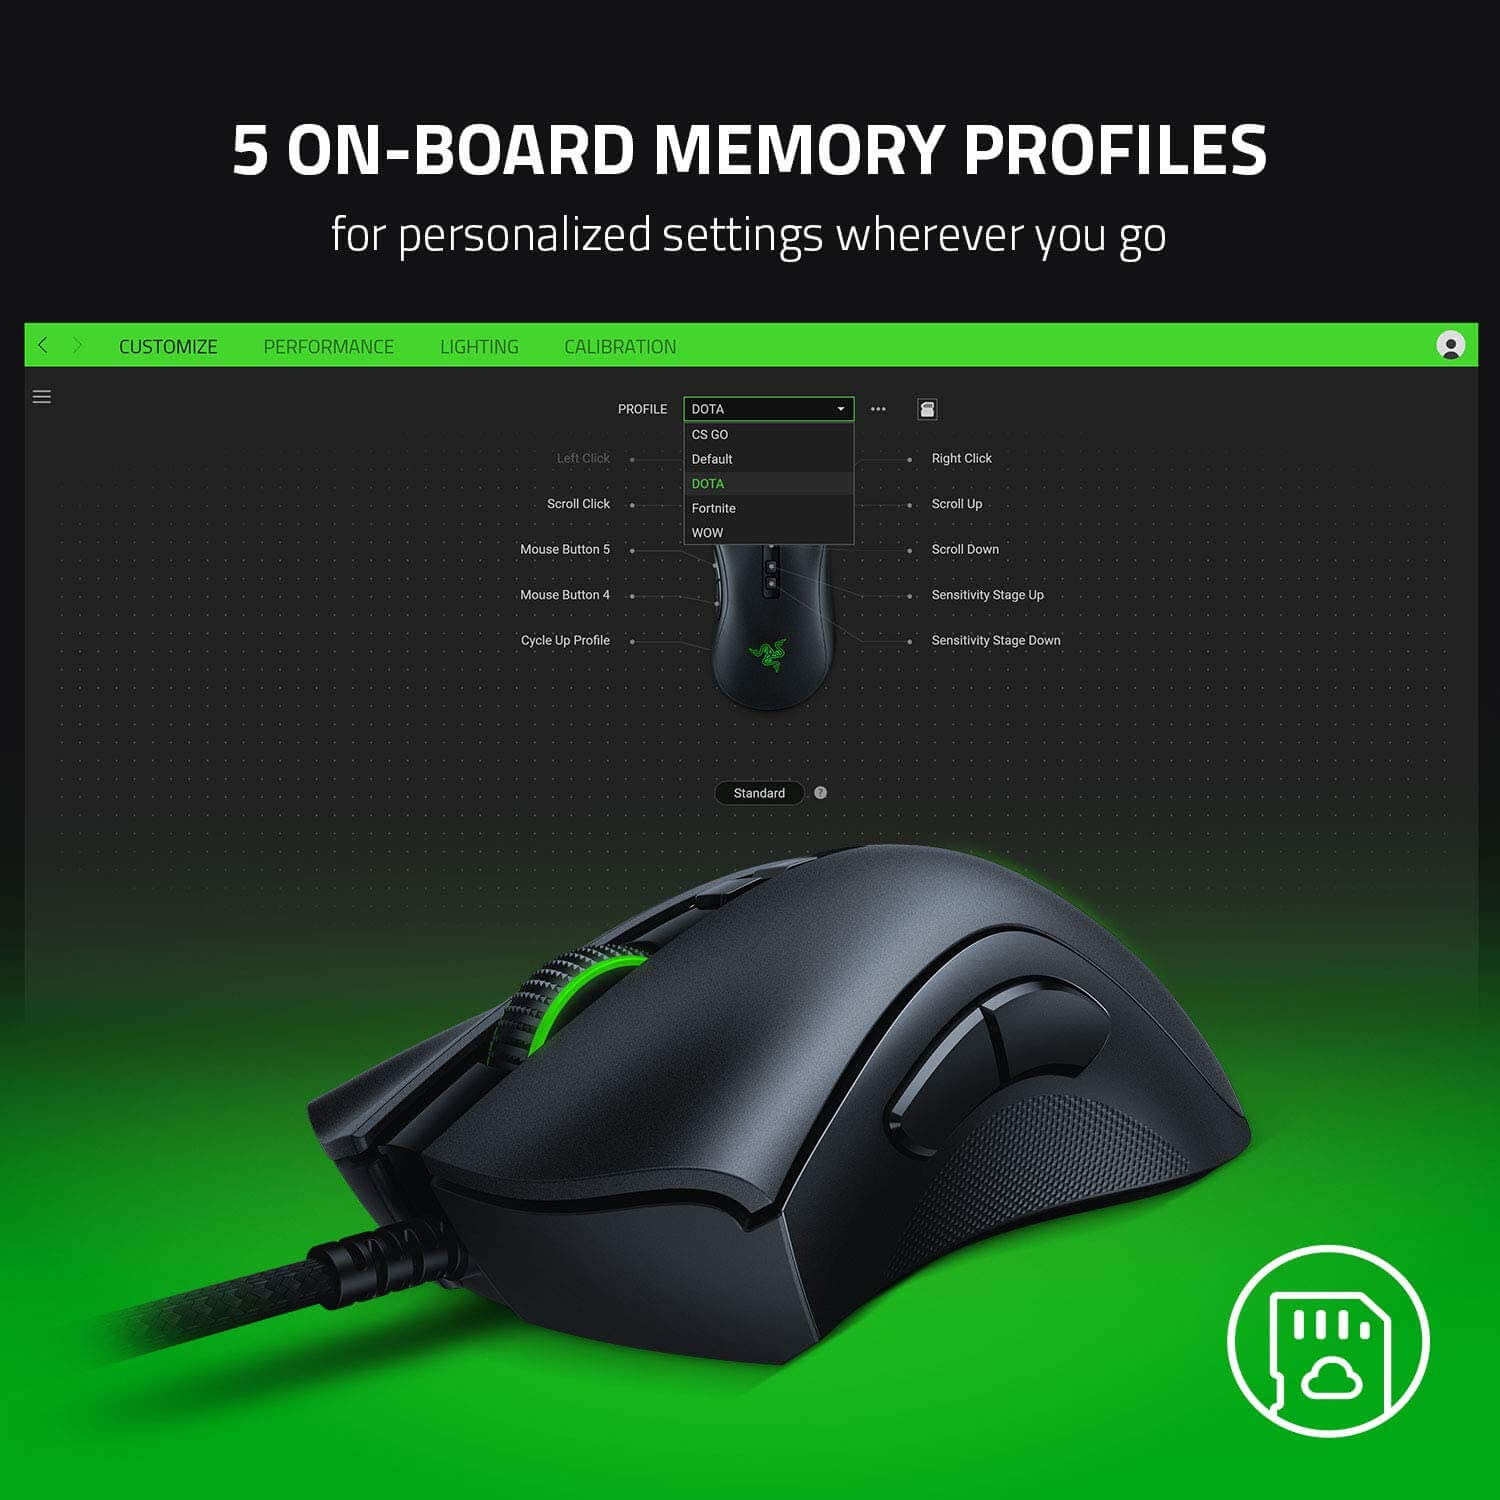 Razer Deathadder V2 Gaming Mouse Features 4